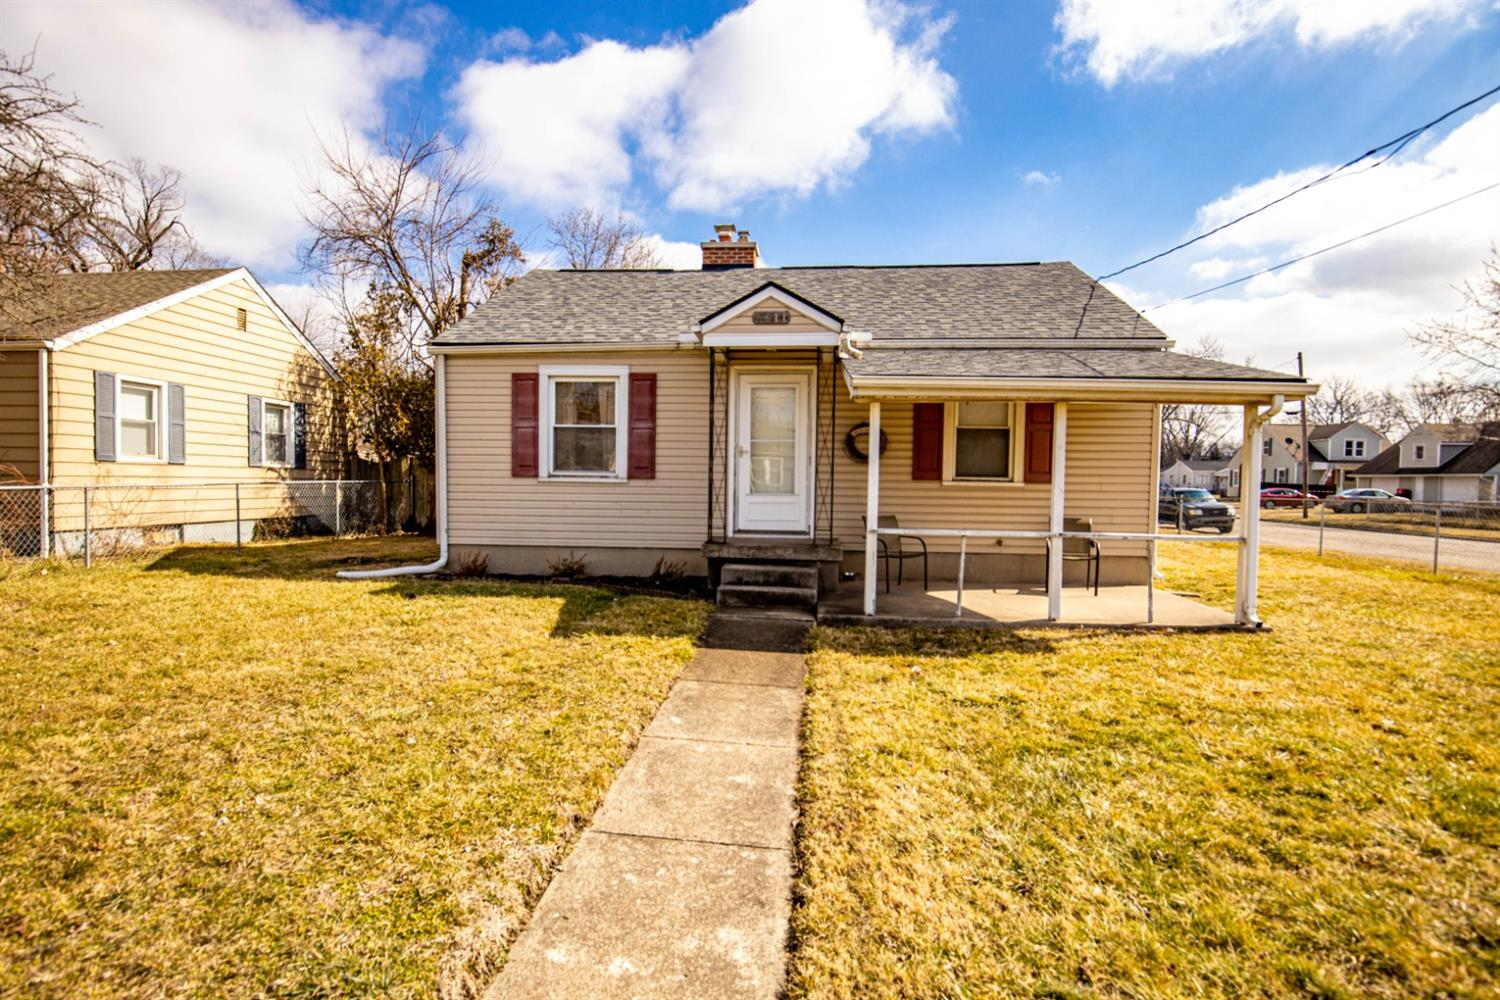 Photo 3 for 1611 Carolina Street Middletown South, OH 45044